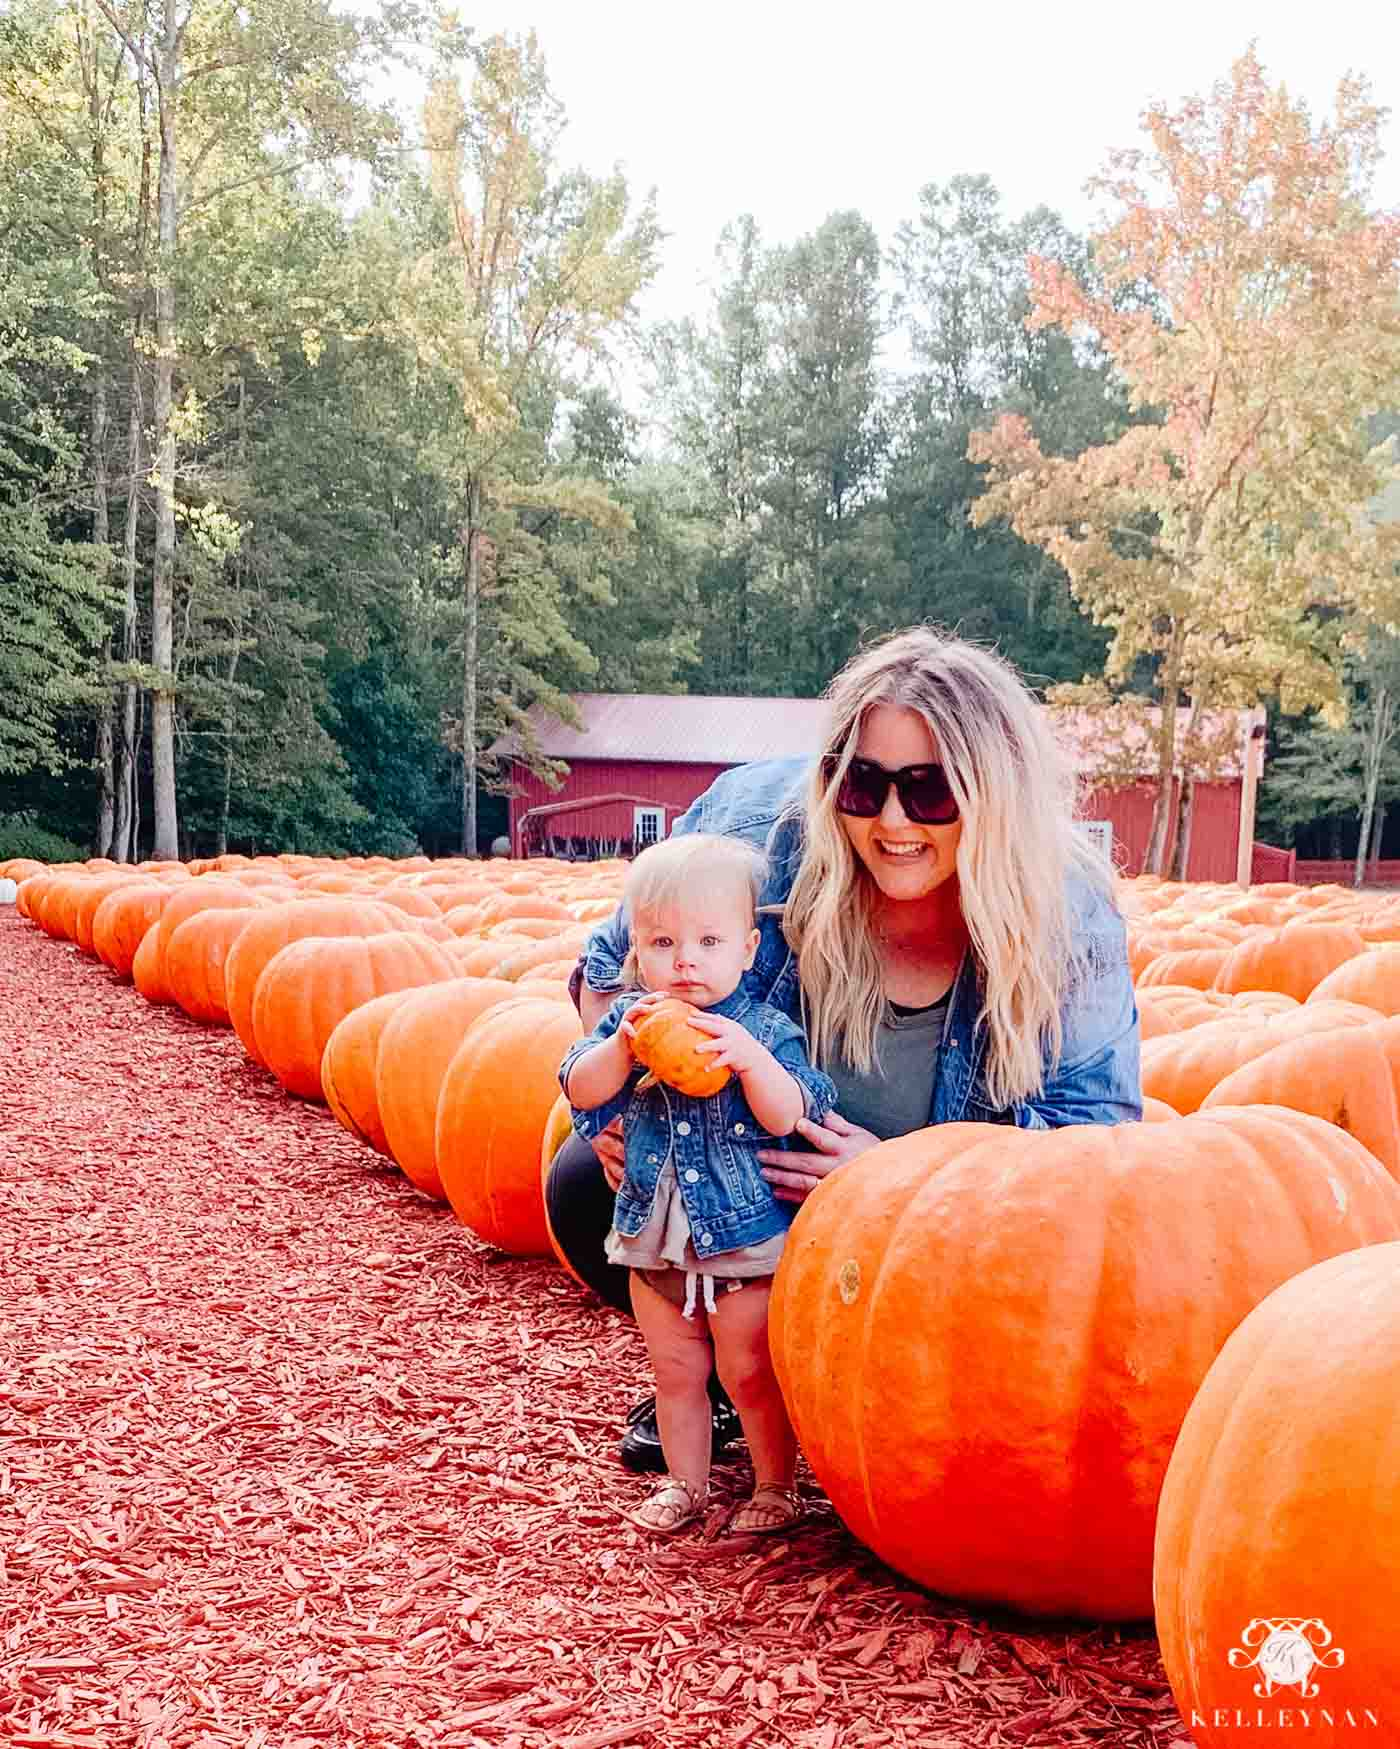 Burt's Pumpkin Farm in Dawsonville, Georgia